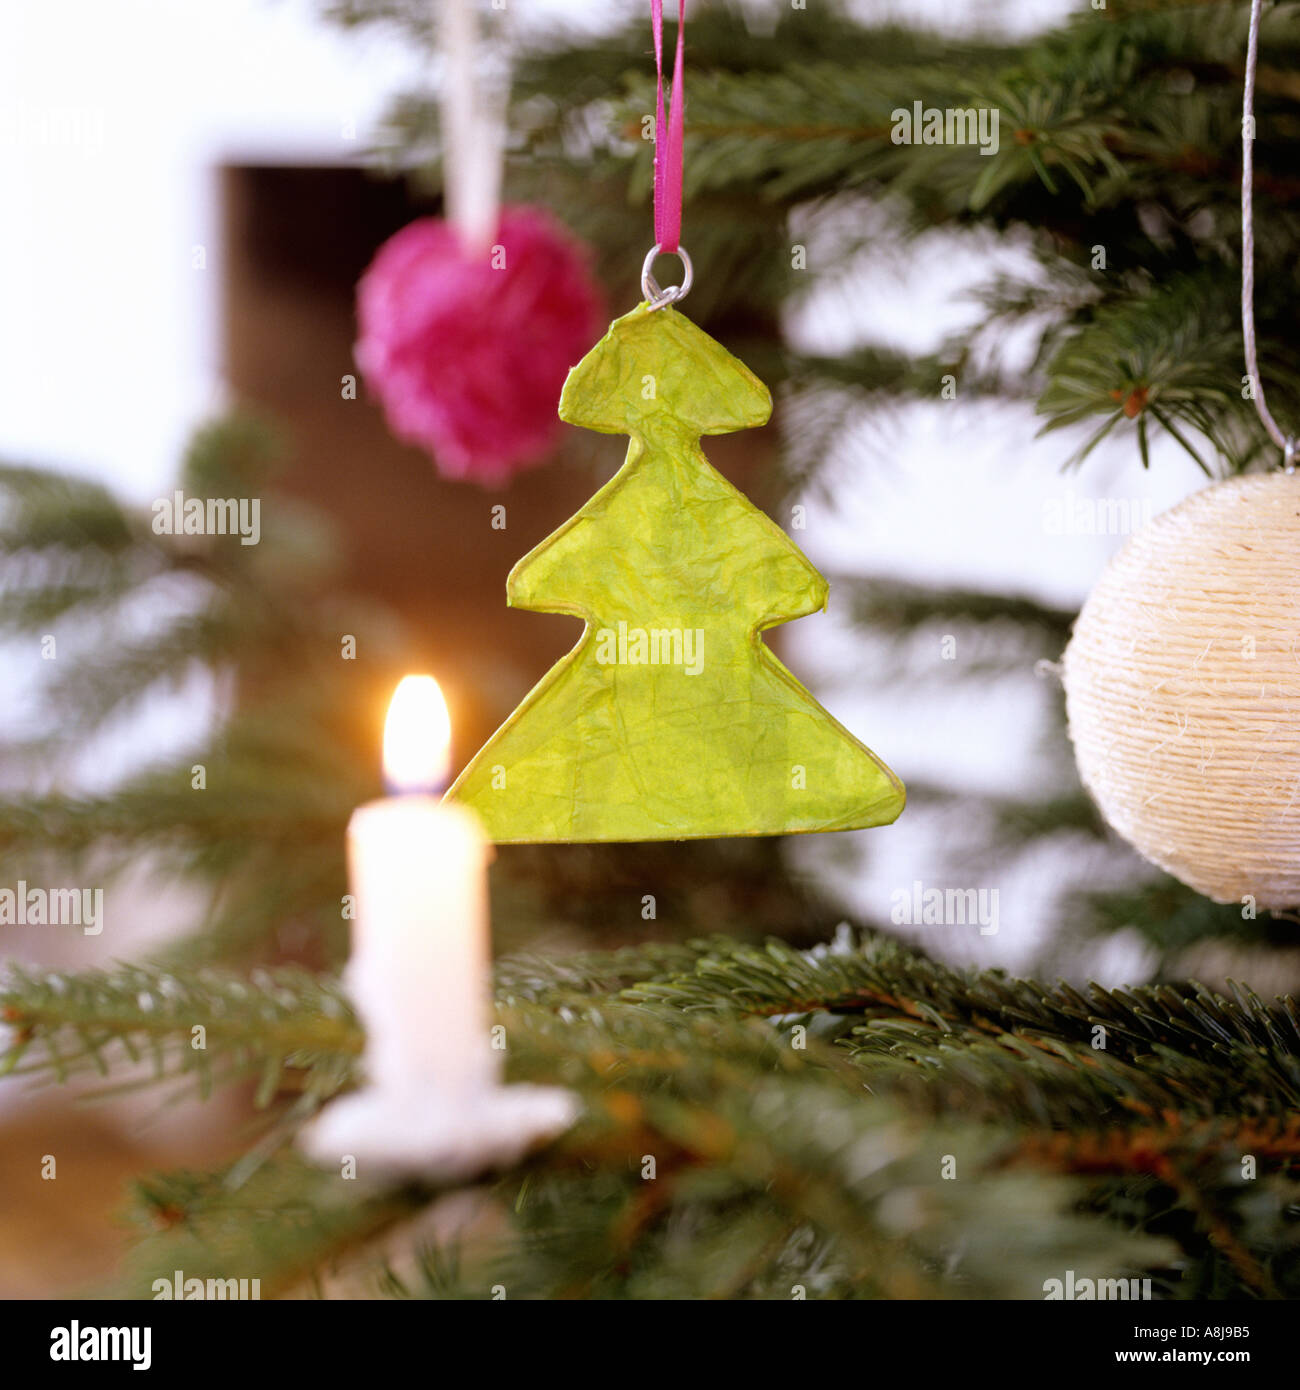 handmade christmas decoration stock image - Modern Contemporary Christmas Decorations